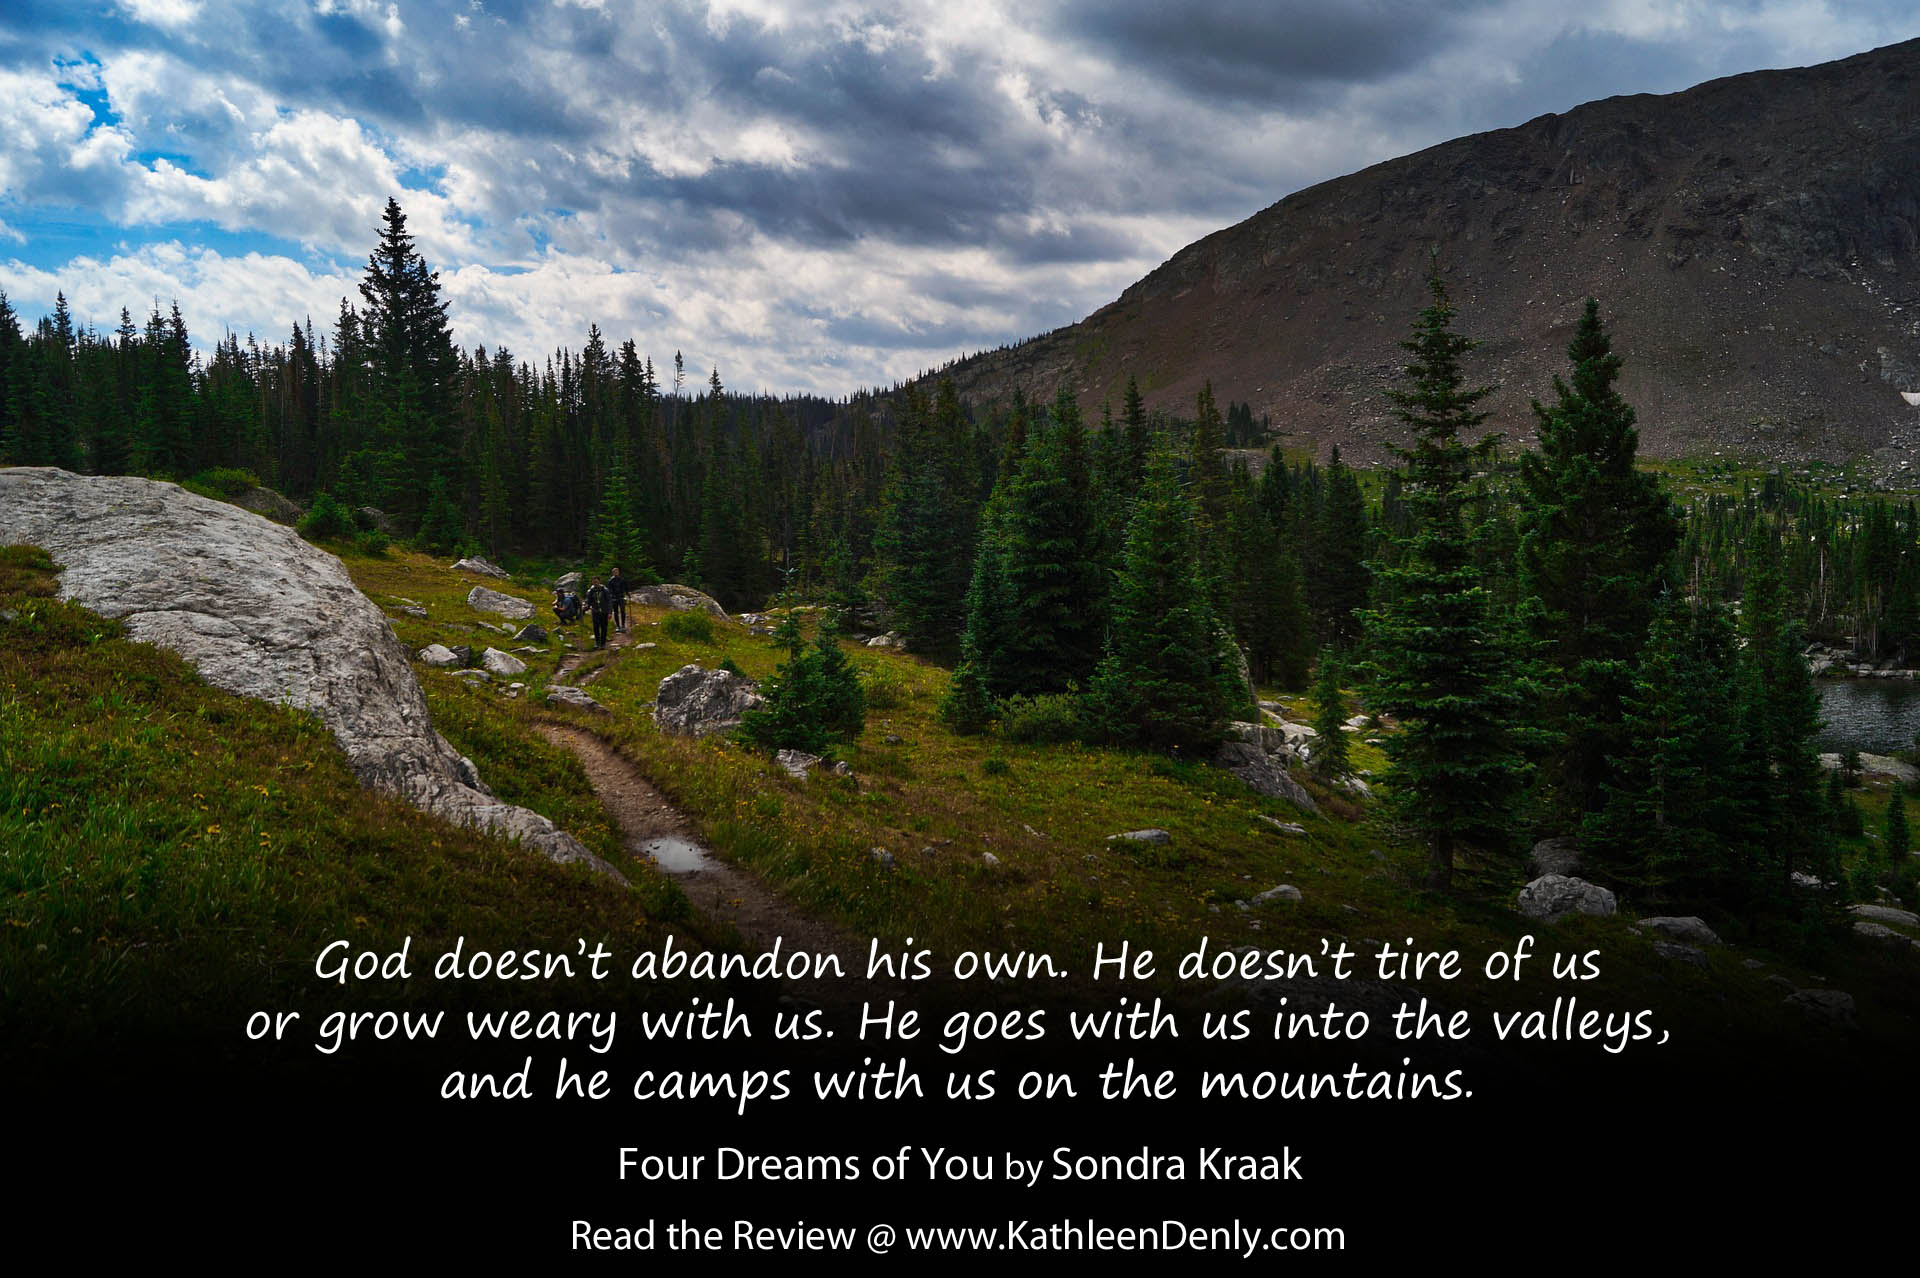 Book Quote - Four Dreams of You - God doesn't grow weary